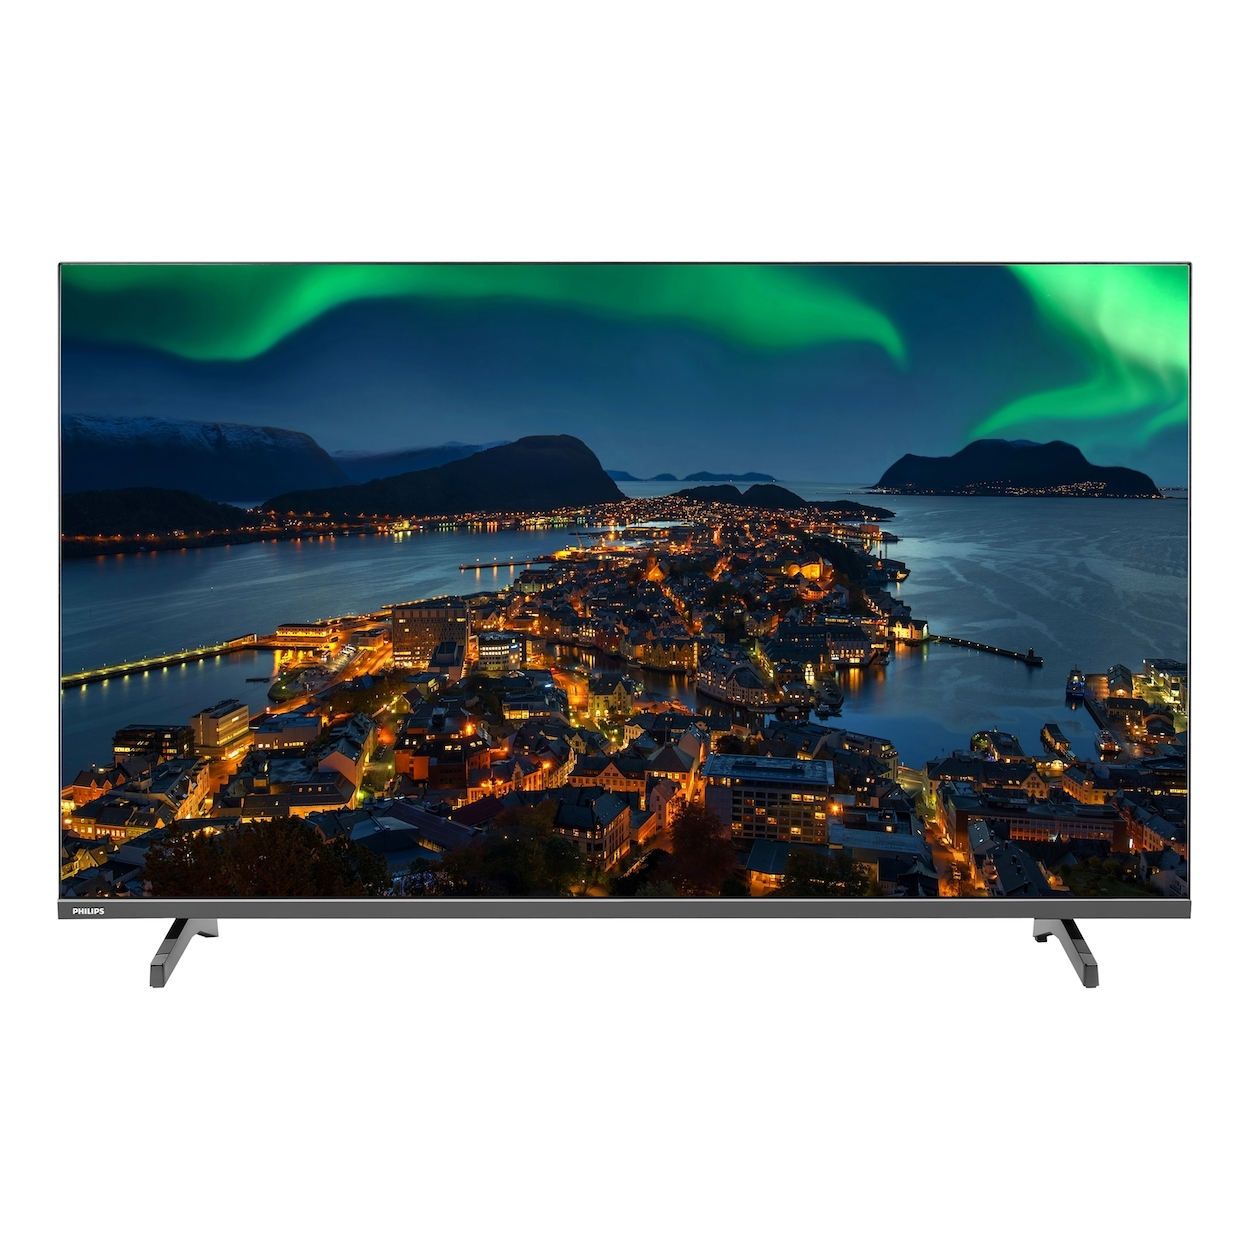 ЖК Телевизор Full HD Philips 43PFS5034 43 дюйма 43PFS5034/60 фото